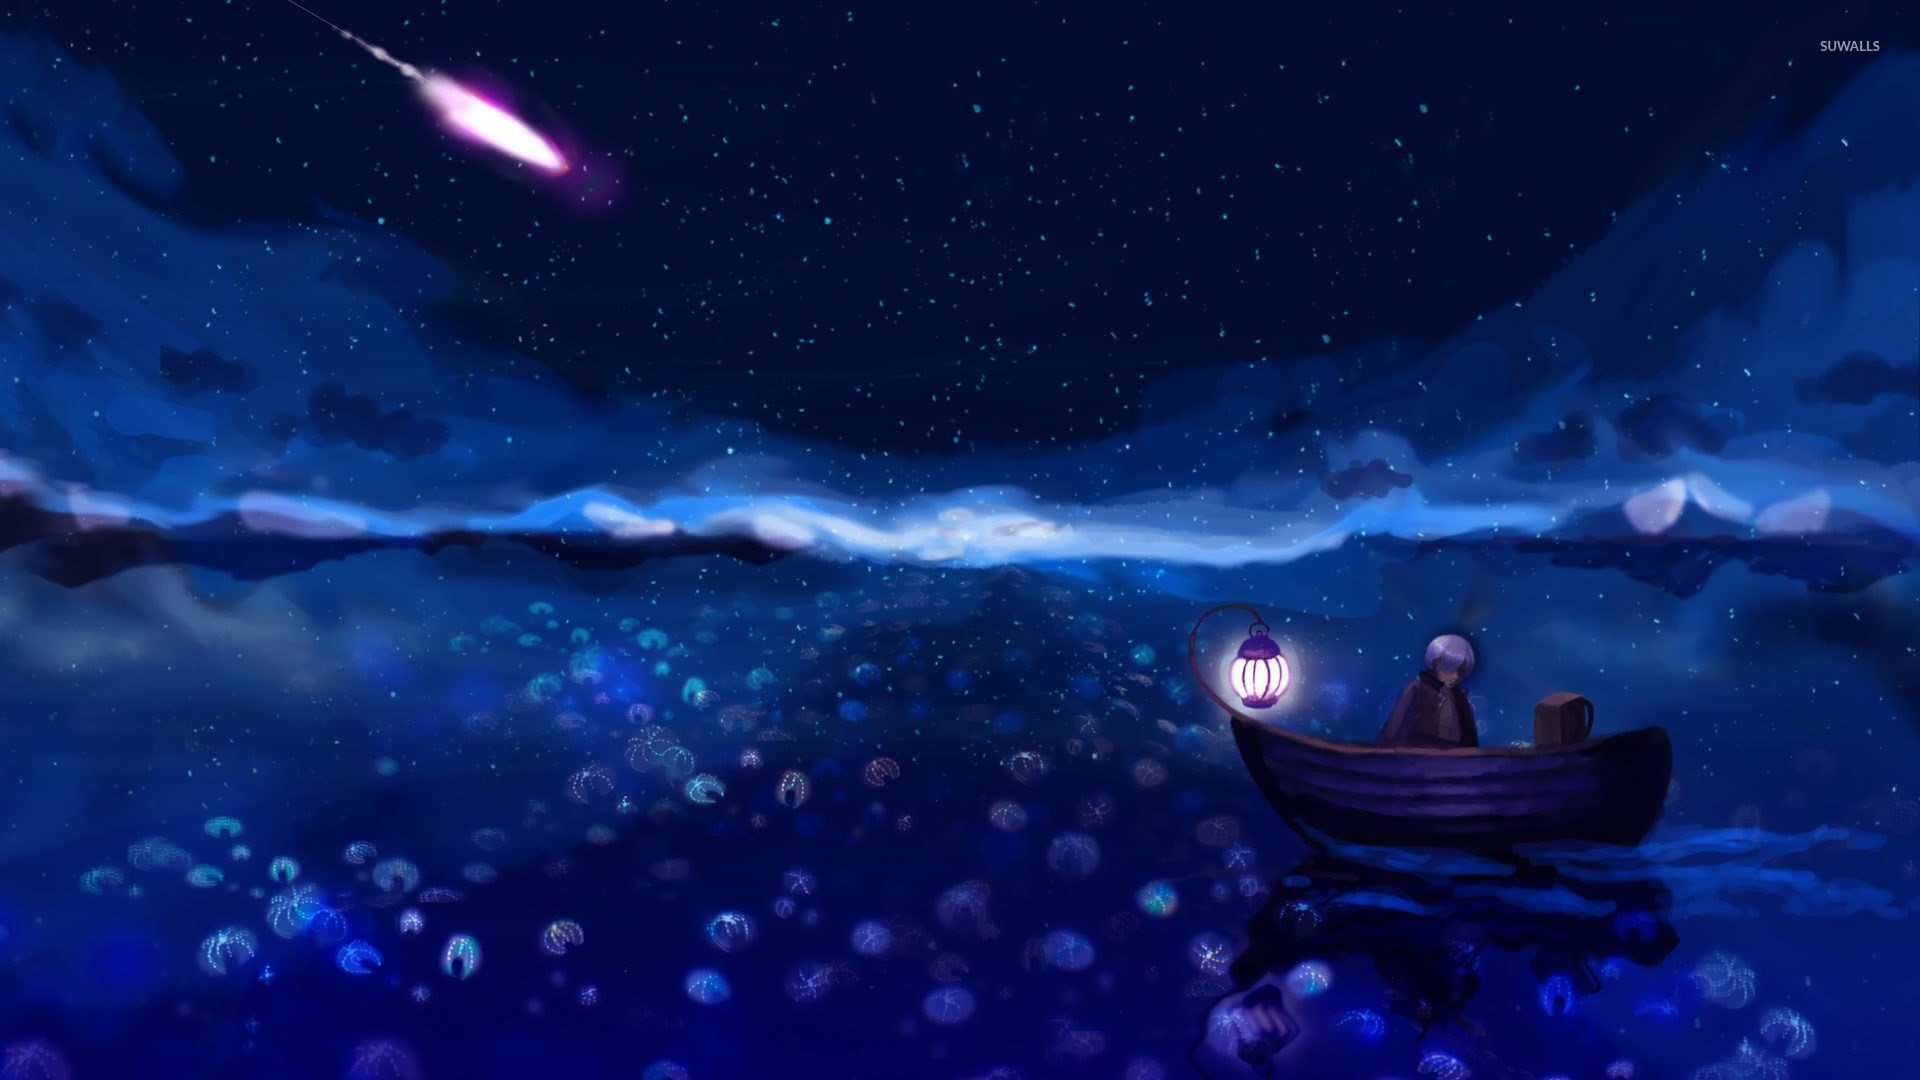 Rowboat On The Dark Sea Wallpaper Artistic Wallpapers 19212